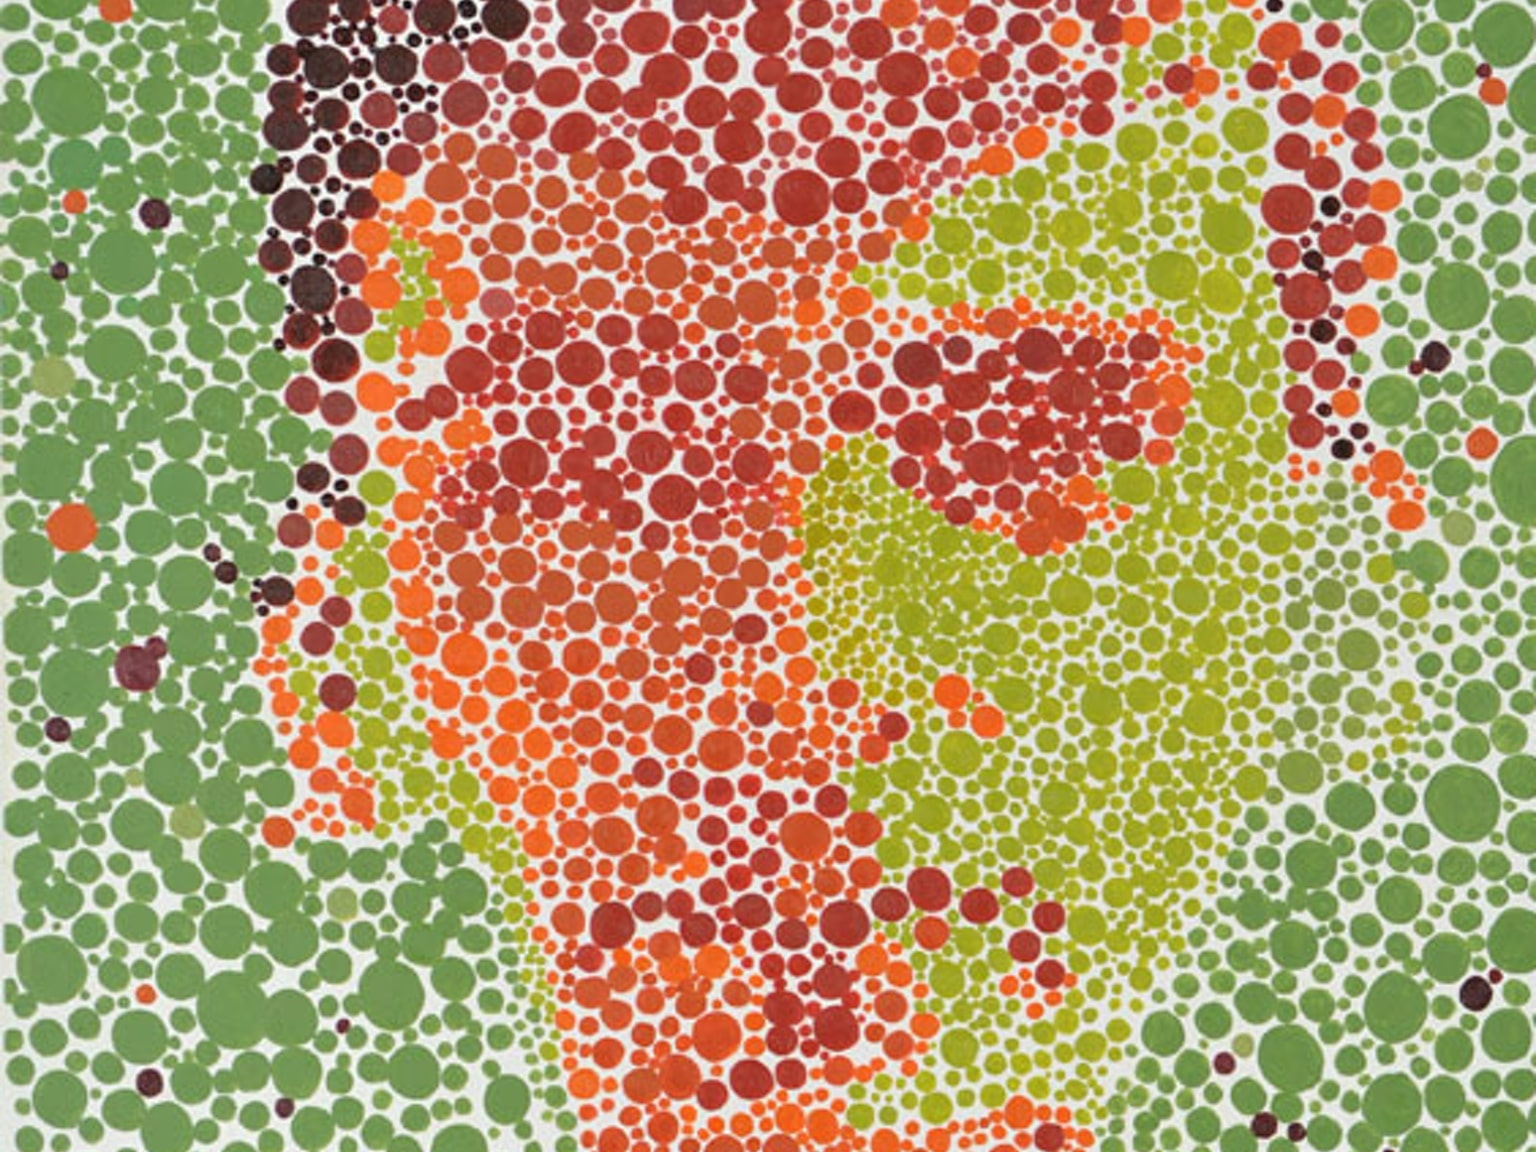 How to Design for Color Blindness